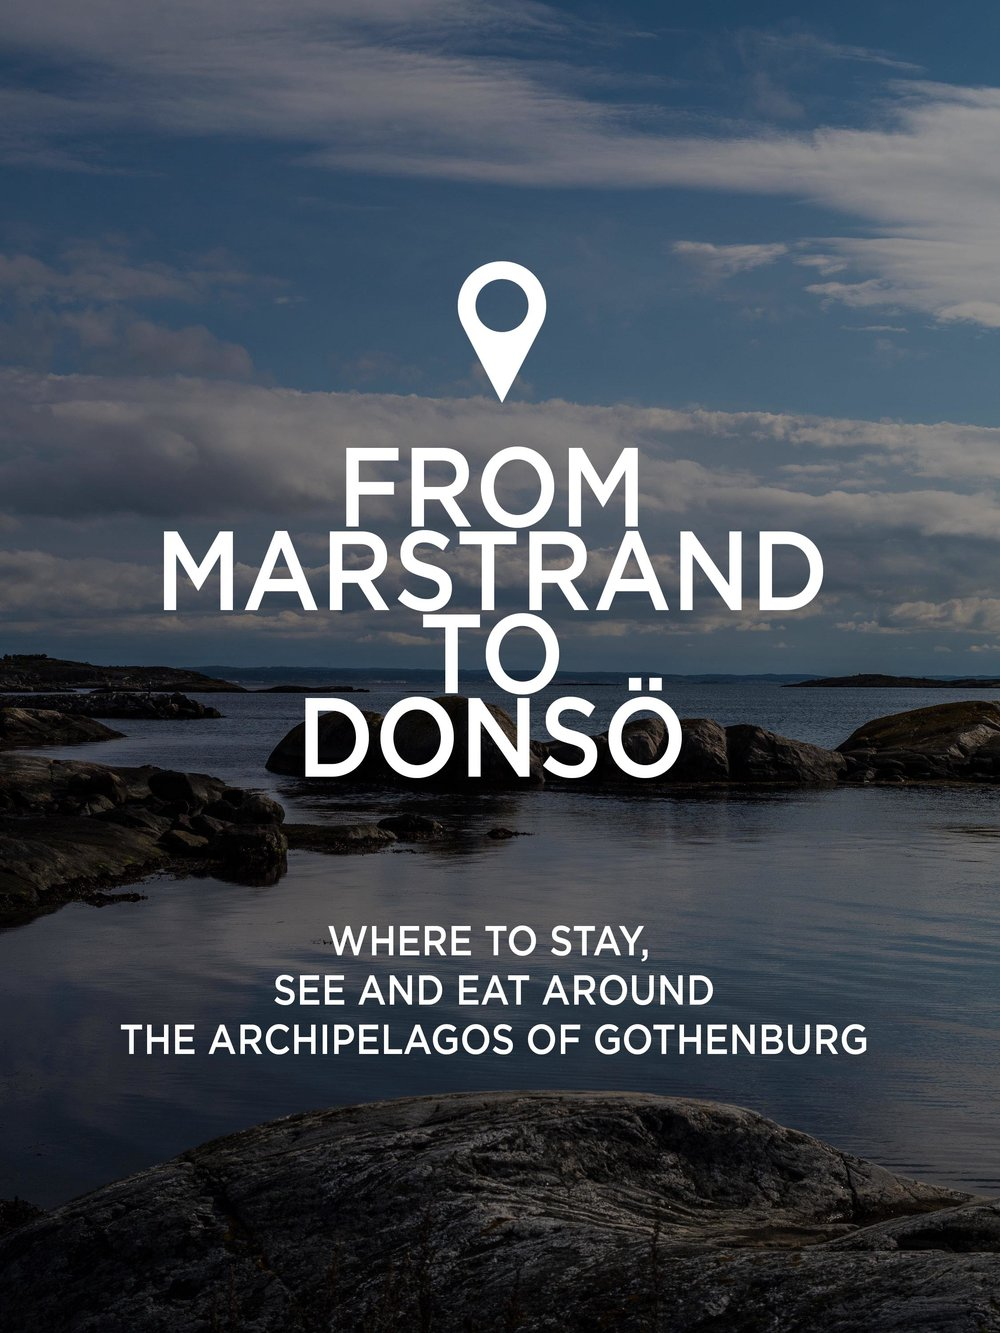 MYBELONGING-MARSTRAND-TO-DONSO-GOTHENBURG-TRAVEL-GUIDE-PHOTOGRAPHY.jpg